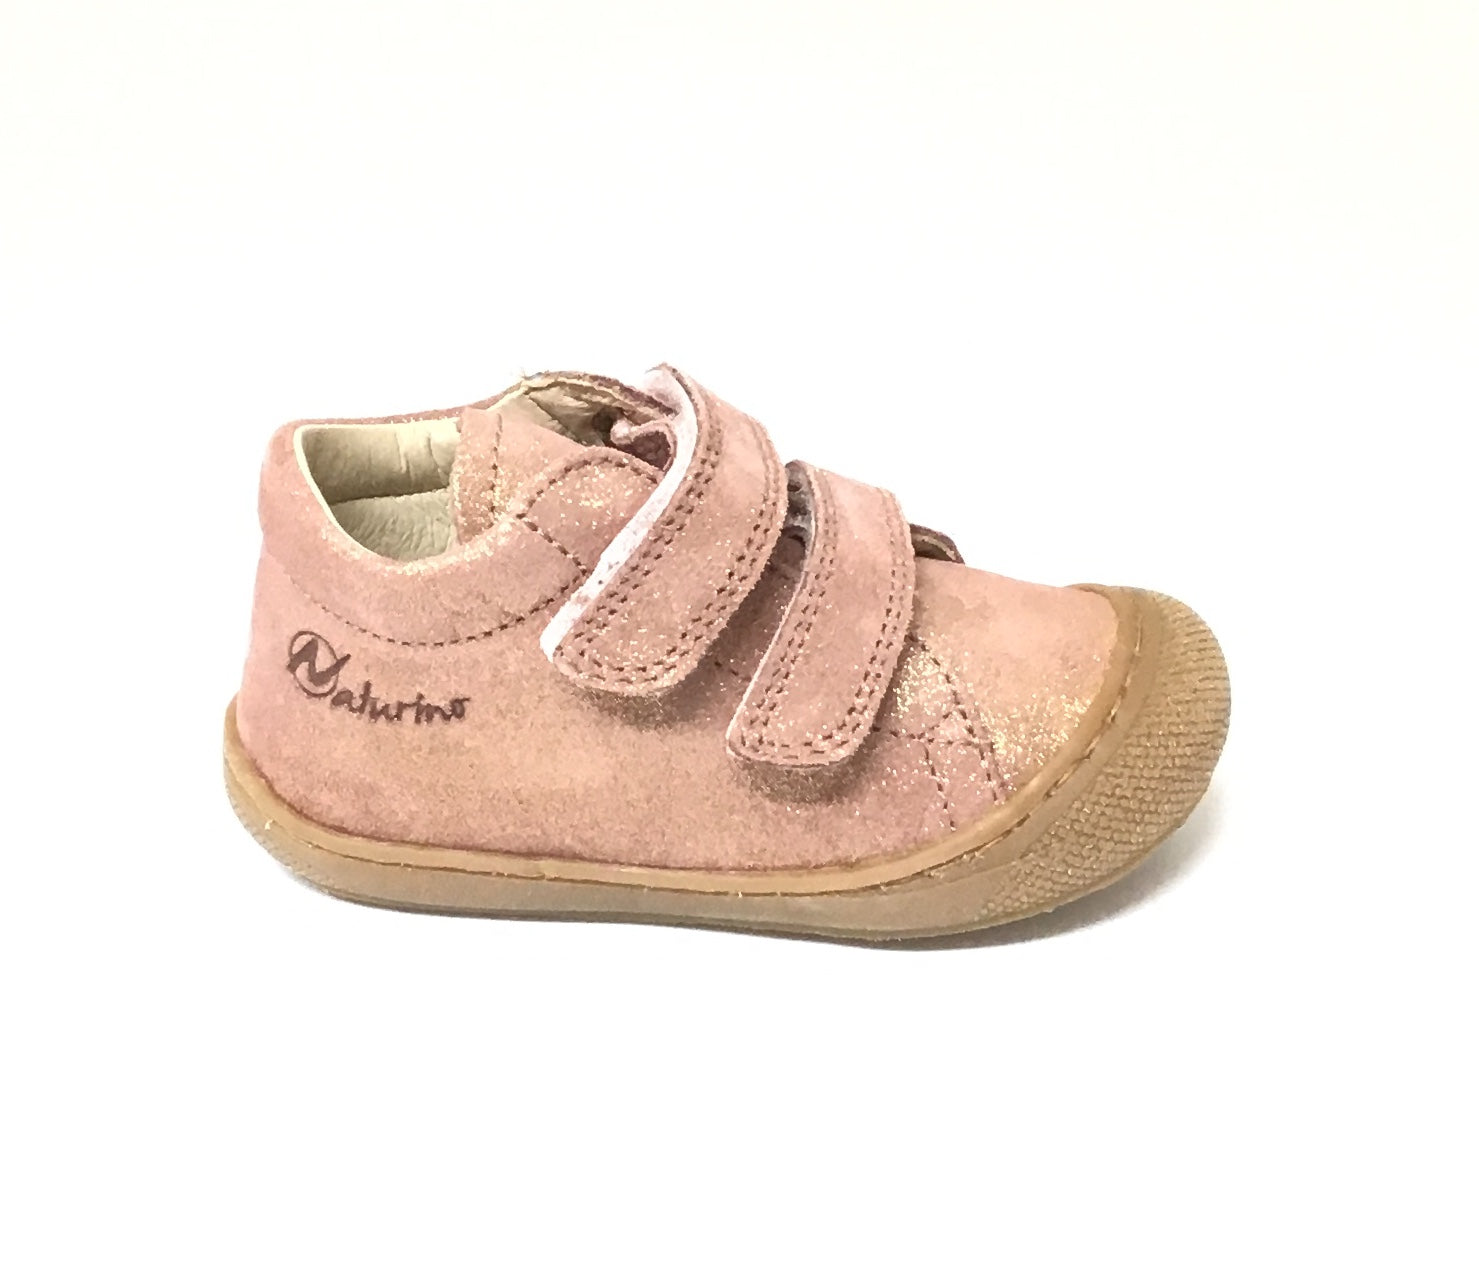 Naturino Pink Glitter Shoe with Double Velcro